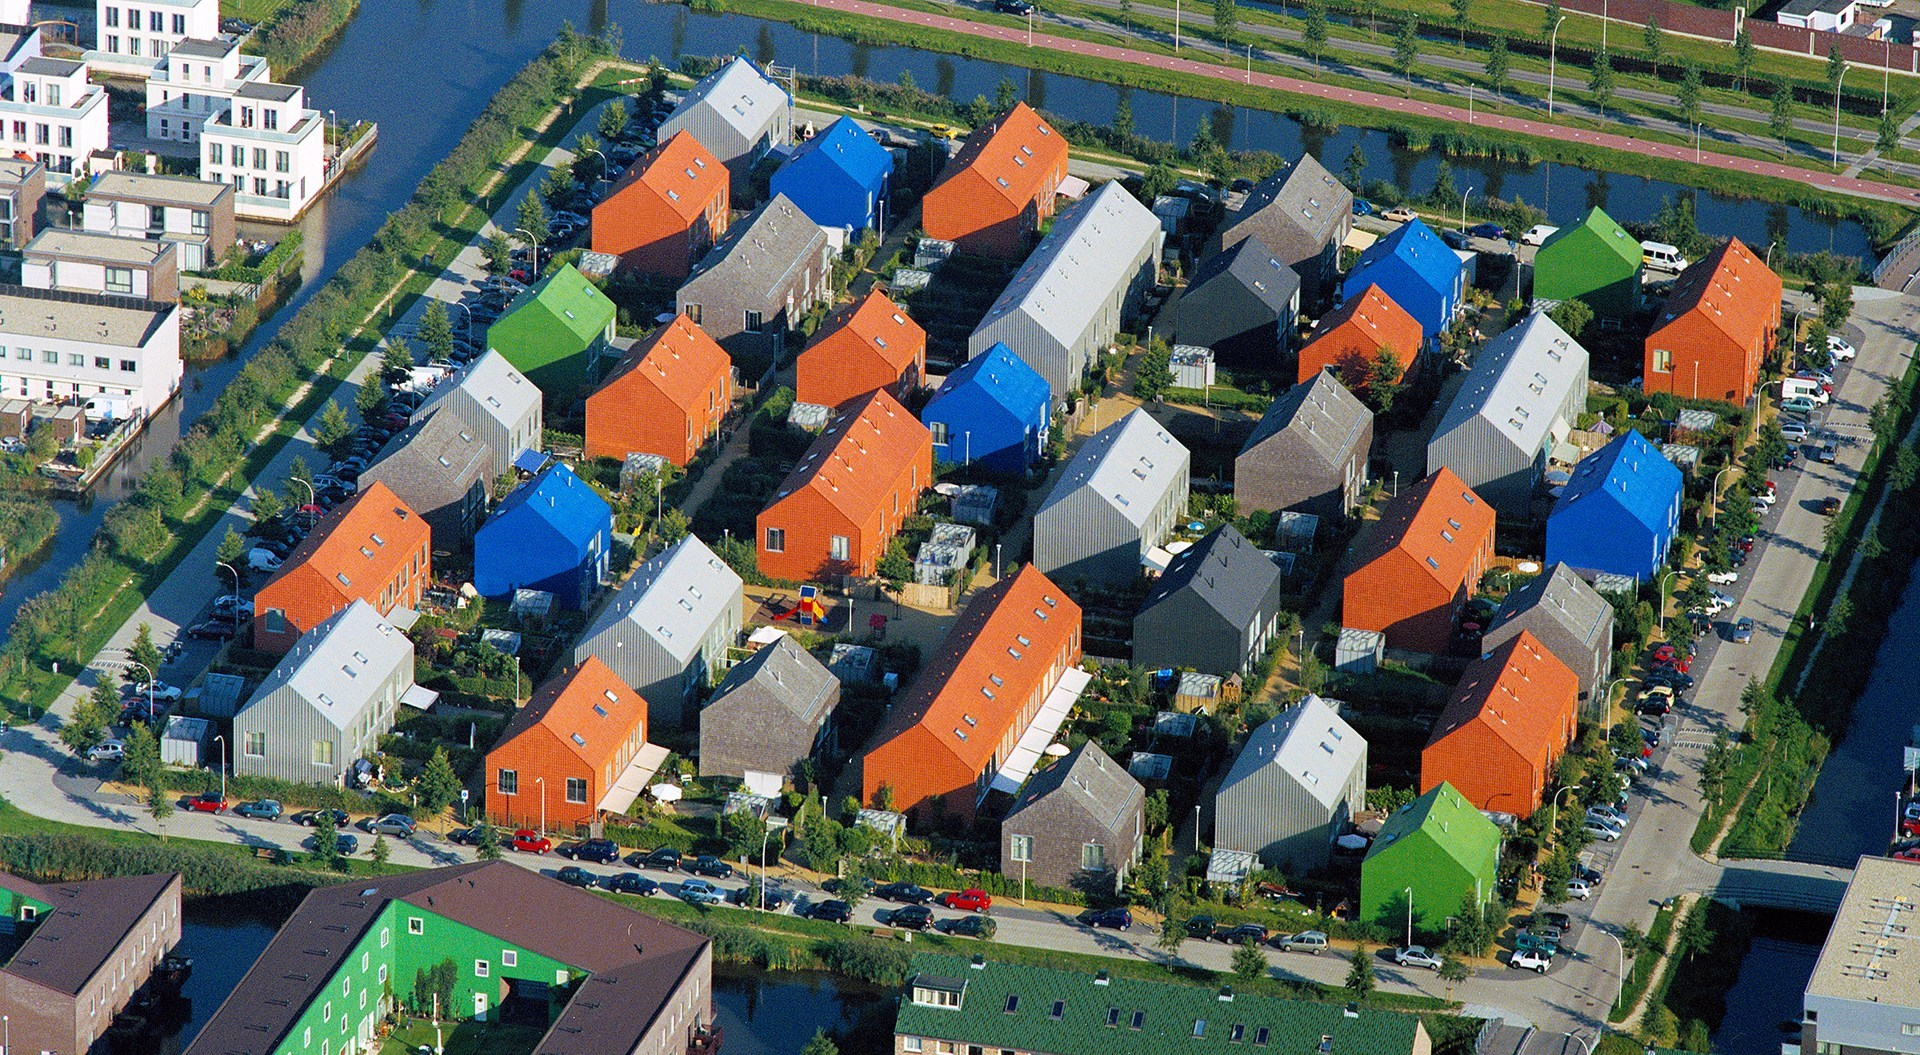 We Already Have Viable Models for Quality Affordable Housing